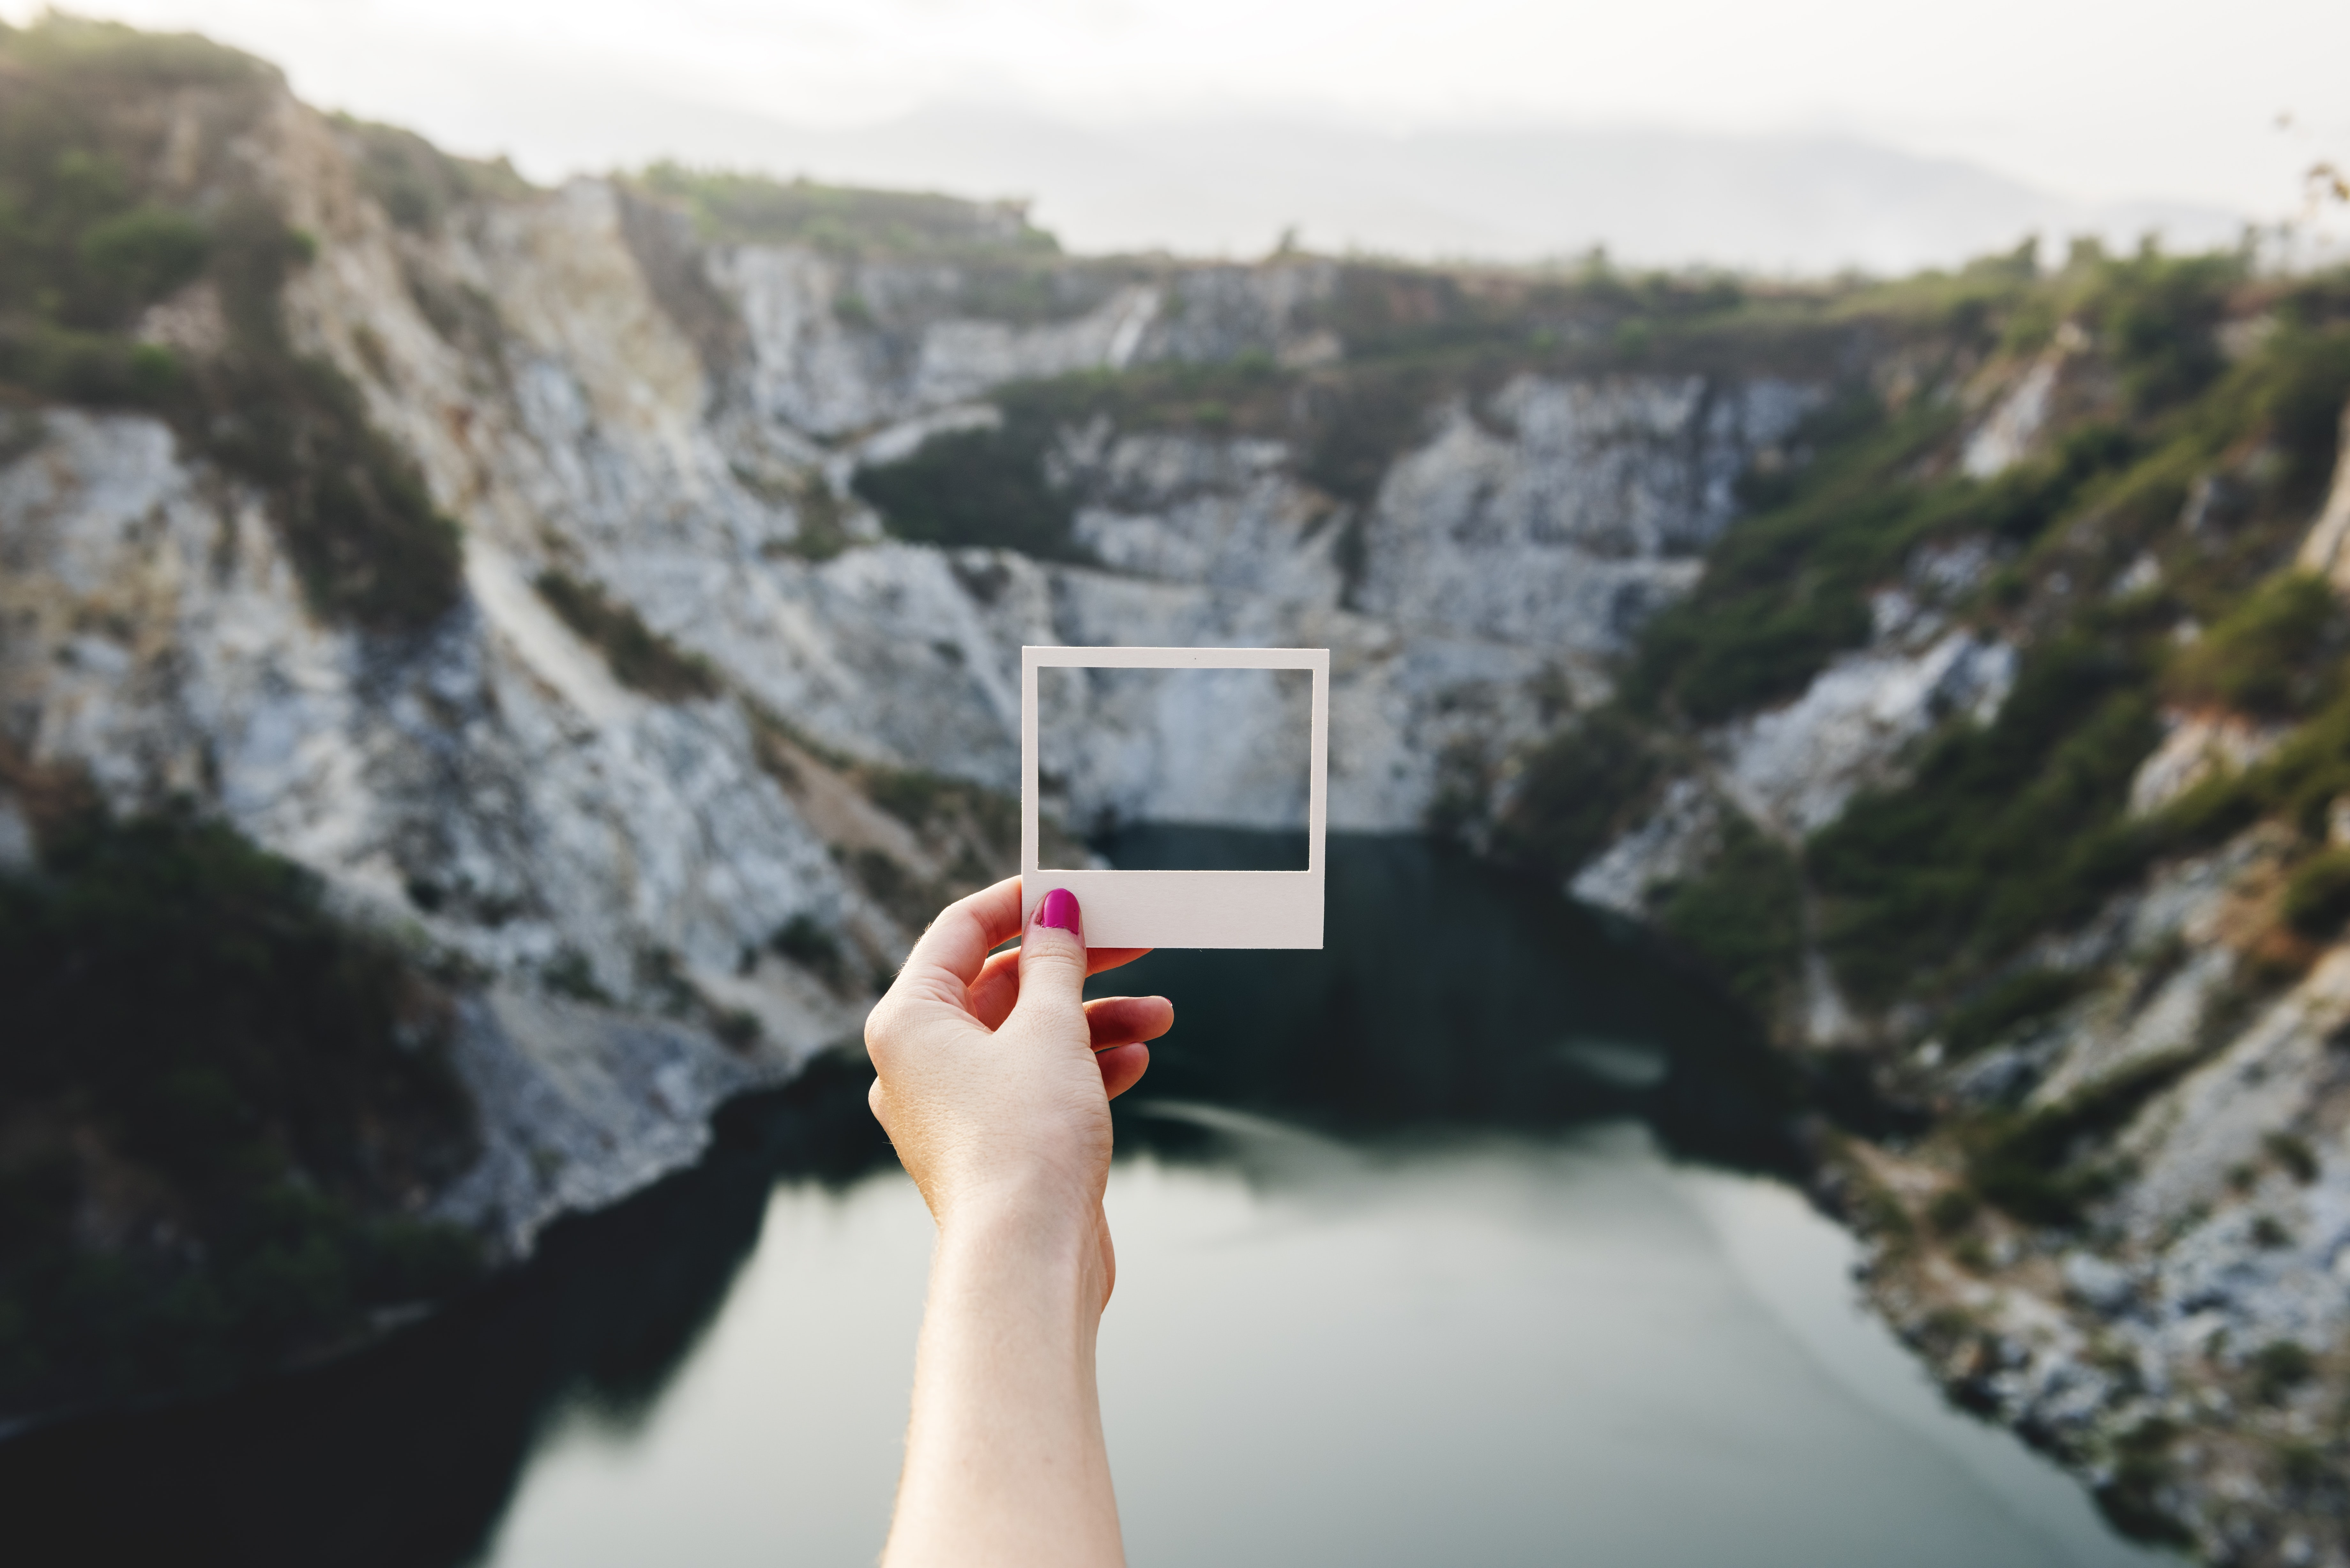 A polaroid frame is held up to a landscape